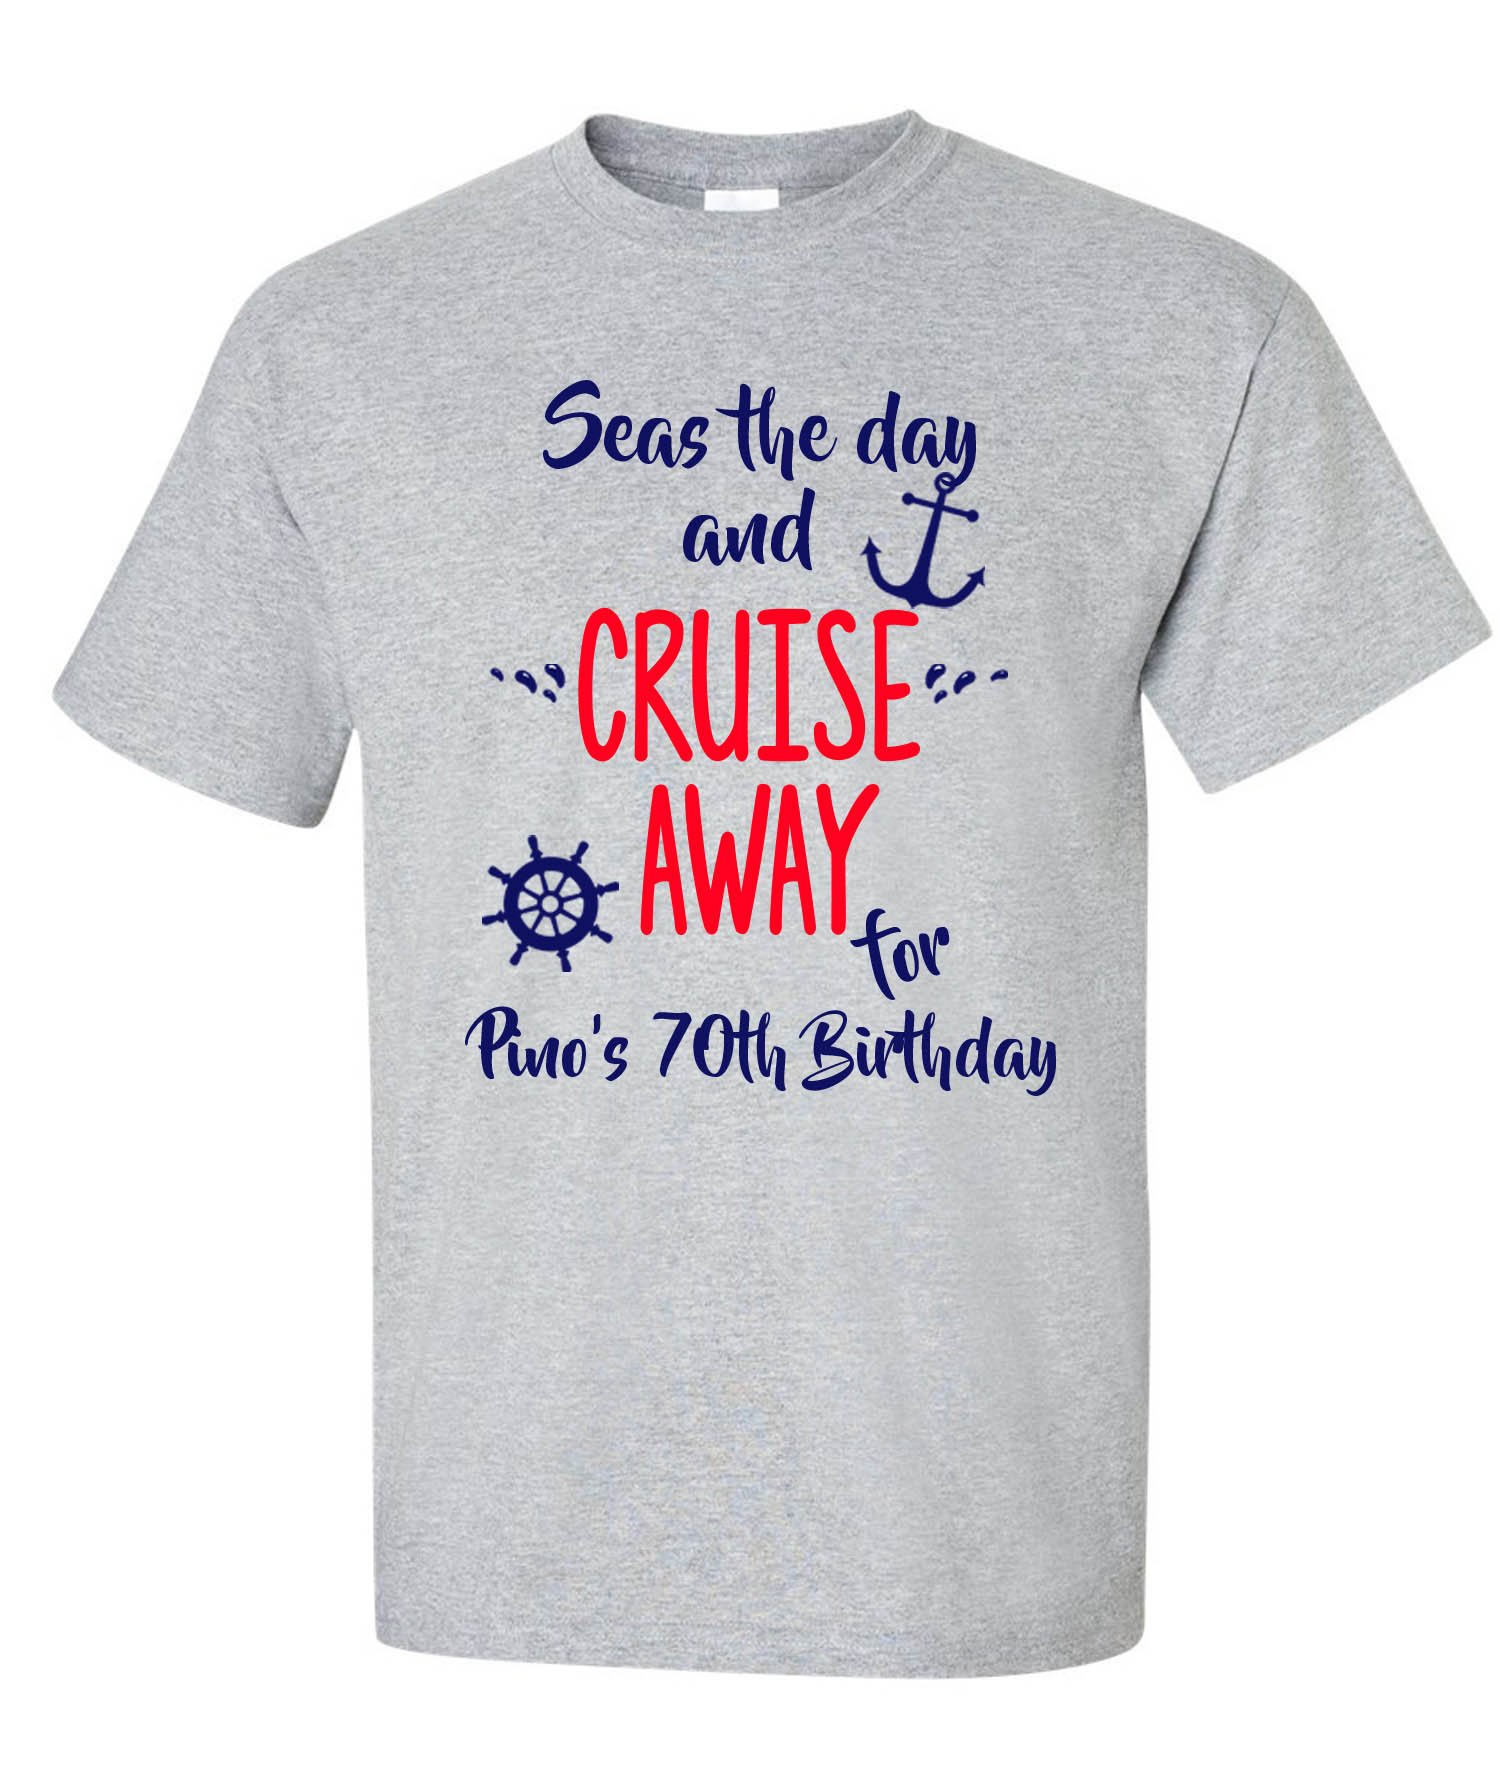 02a373c6 Family Cruise t-Shirt, vacation in 2019 | group cruise shirts | Family  cruise shirts, Family cruise, Group cruise shirts